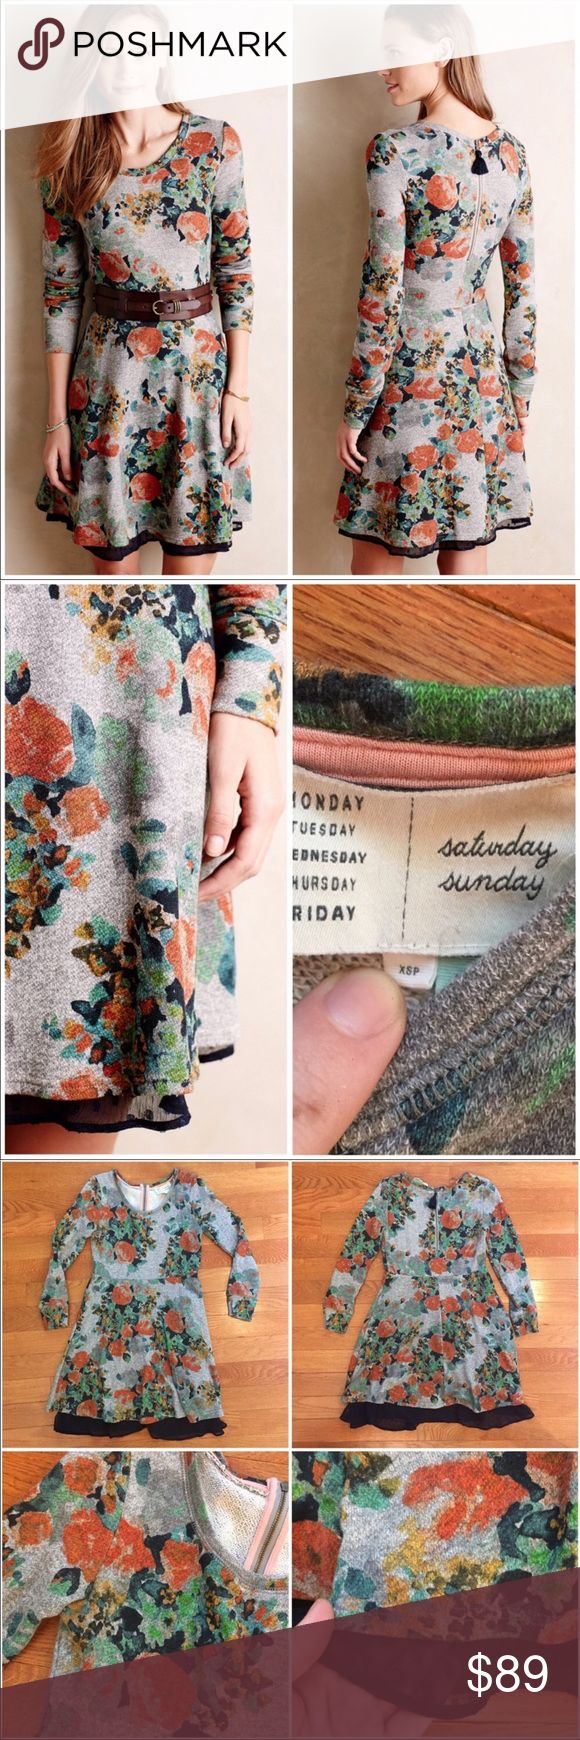 "ANTHROPOLOGIE | Saturday Sunday Terry Floral Dress The perfect dress for 🍂FALL! This is so versatile and can be worn practically to anything. Amazing dress in French terry. Fit and flare style. EUC. 15"" bust, 13"" waist, 33"" long. EUC. Size XS Petite Anthropologie Dresses"